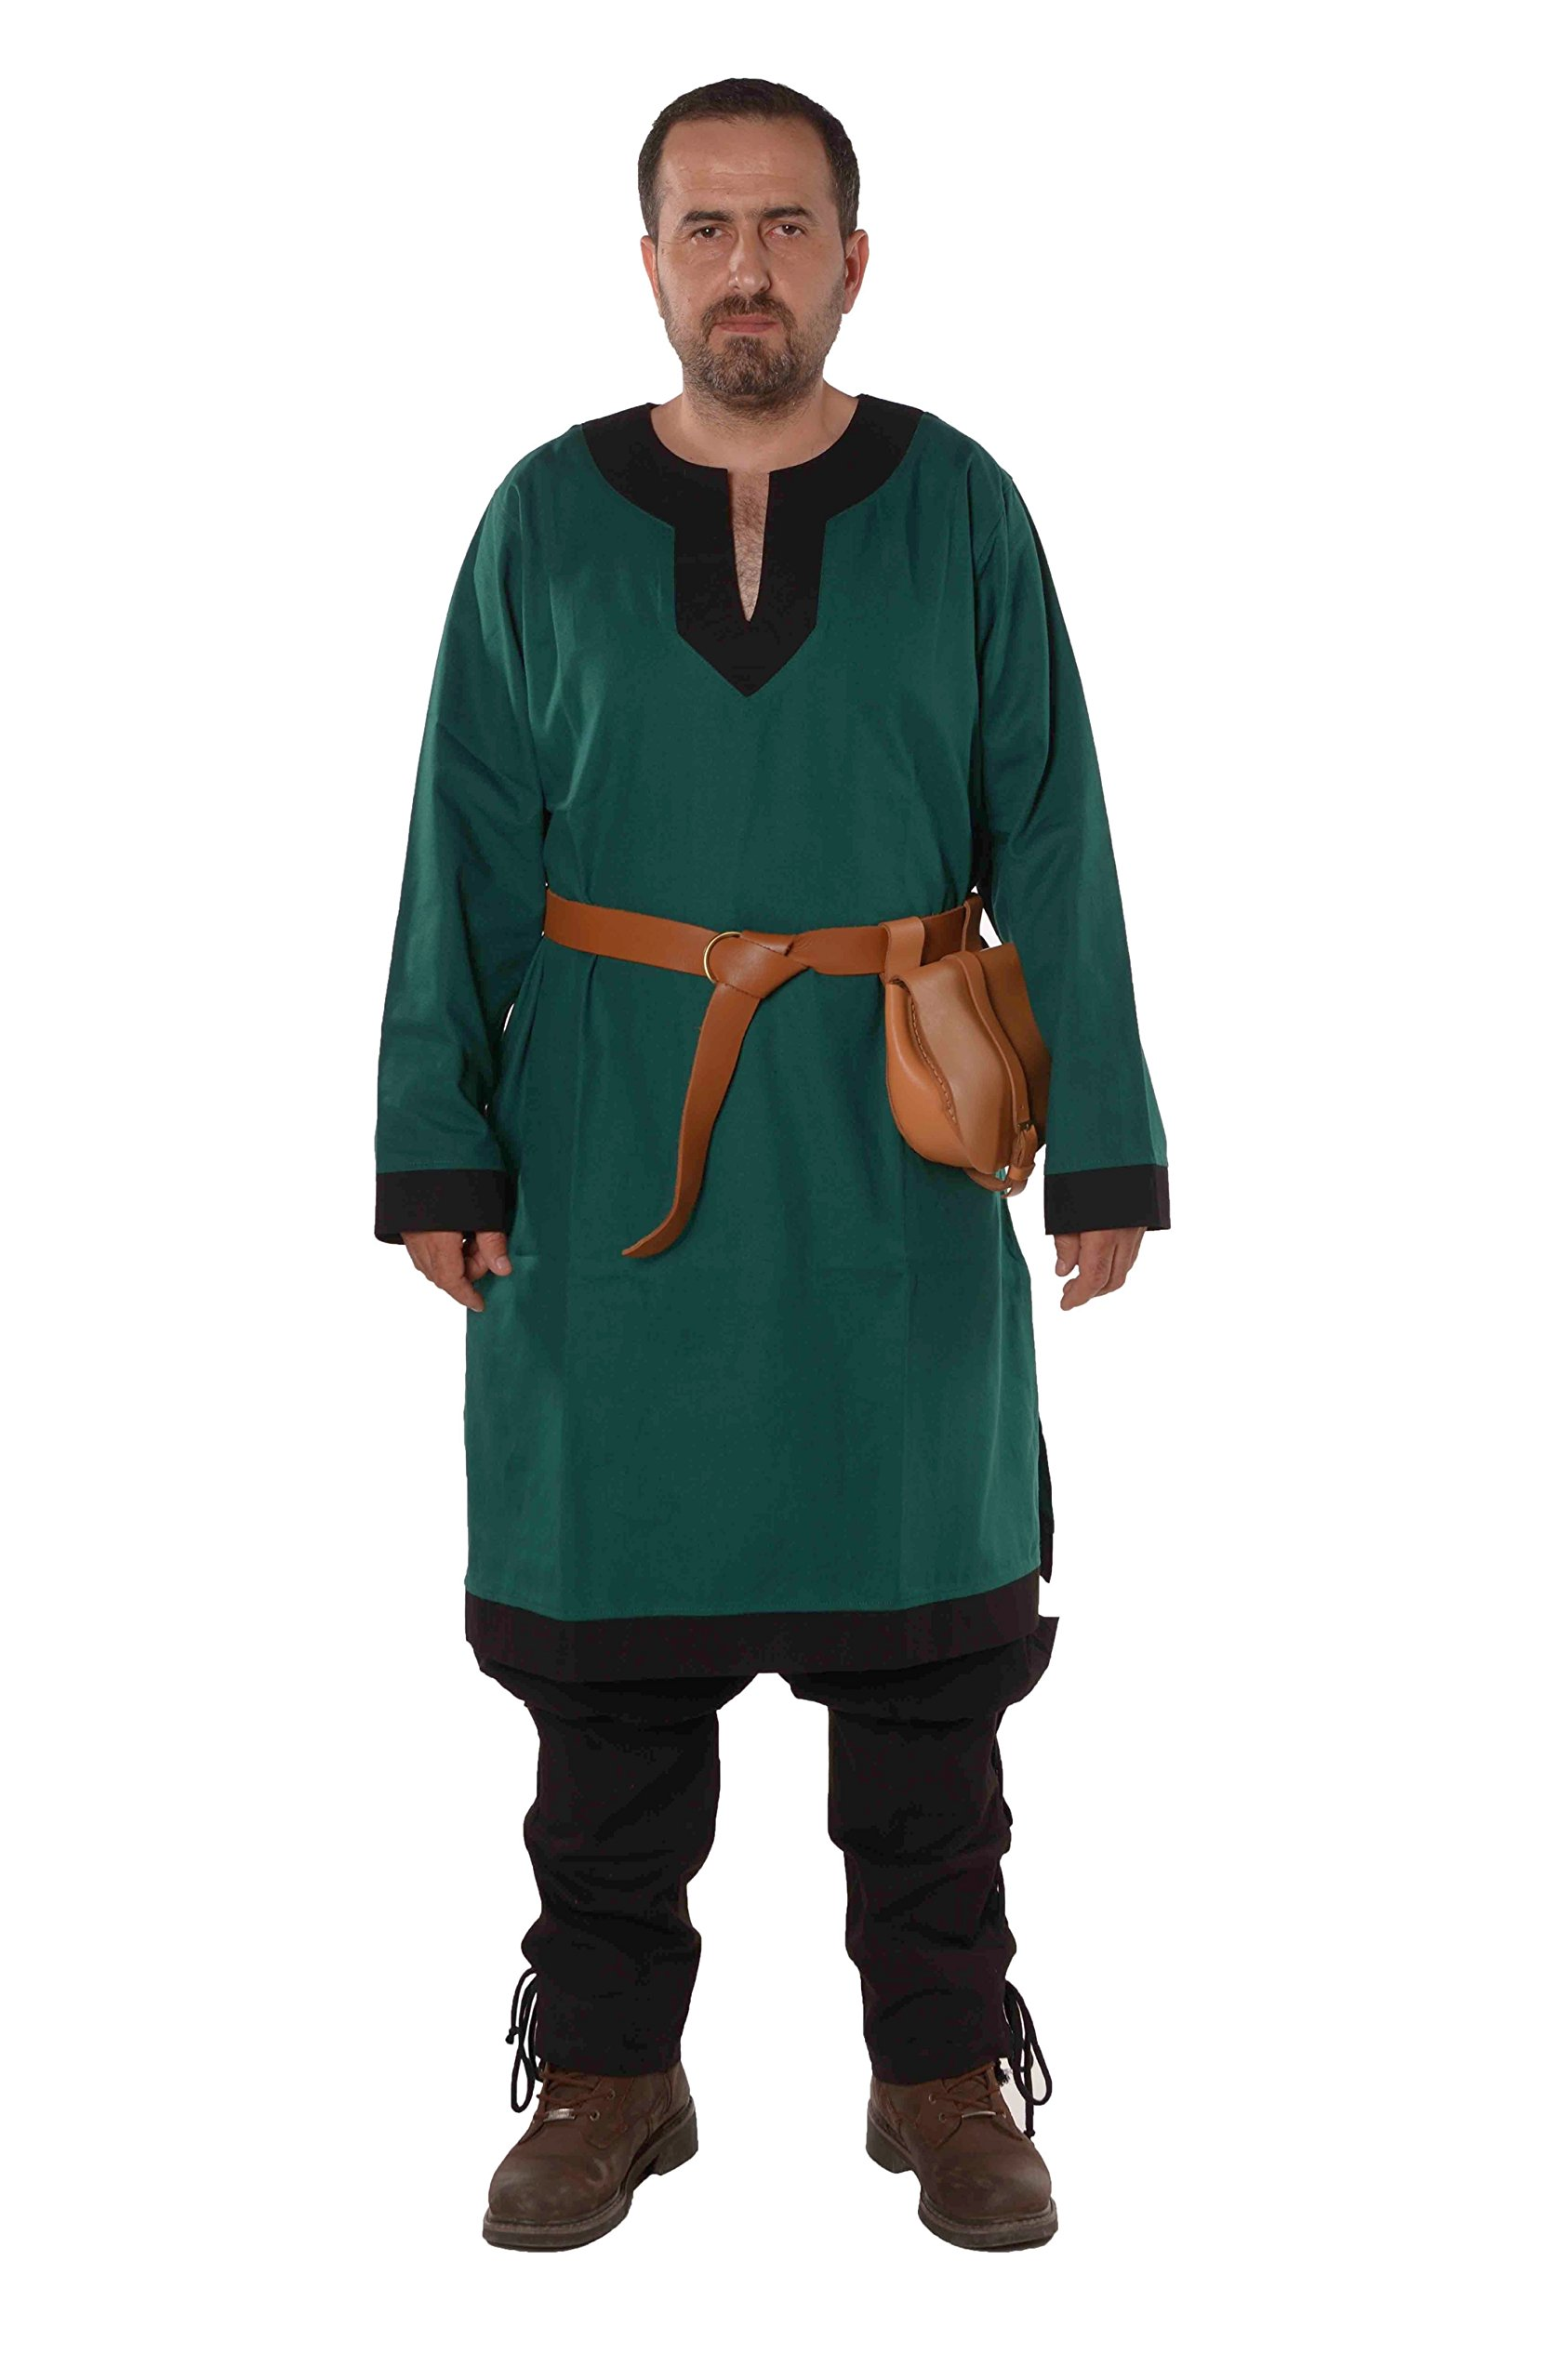 Arthur Medieval, Viking, LARP and Tunic   - Made in Turkey by bycalvina,Forest Green / Black,Large